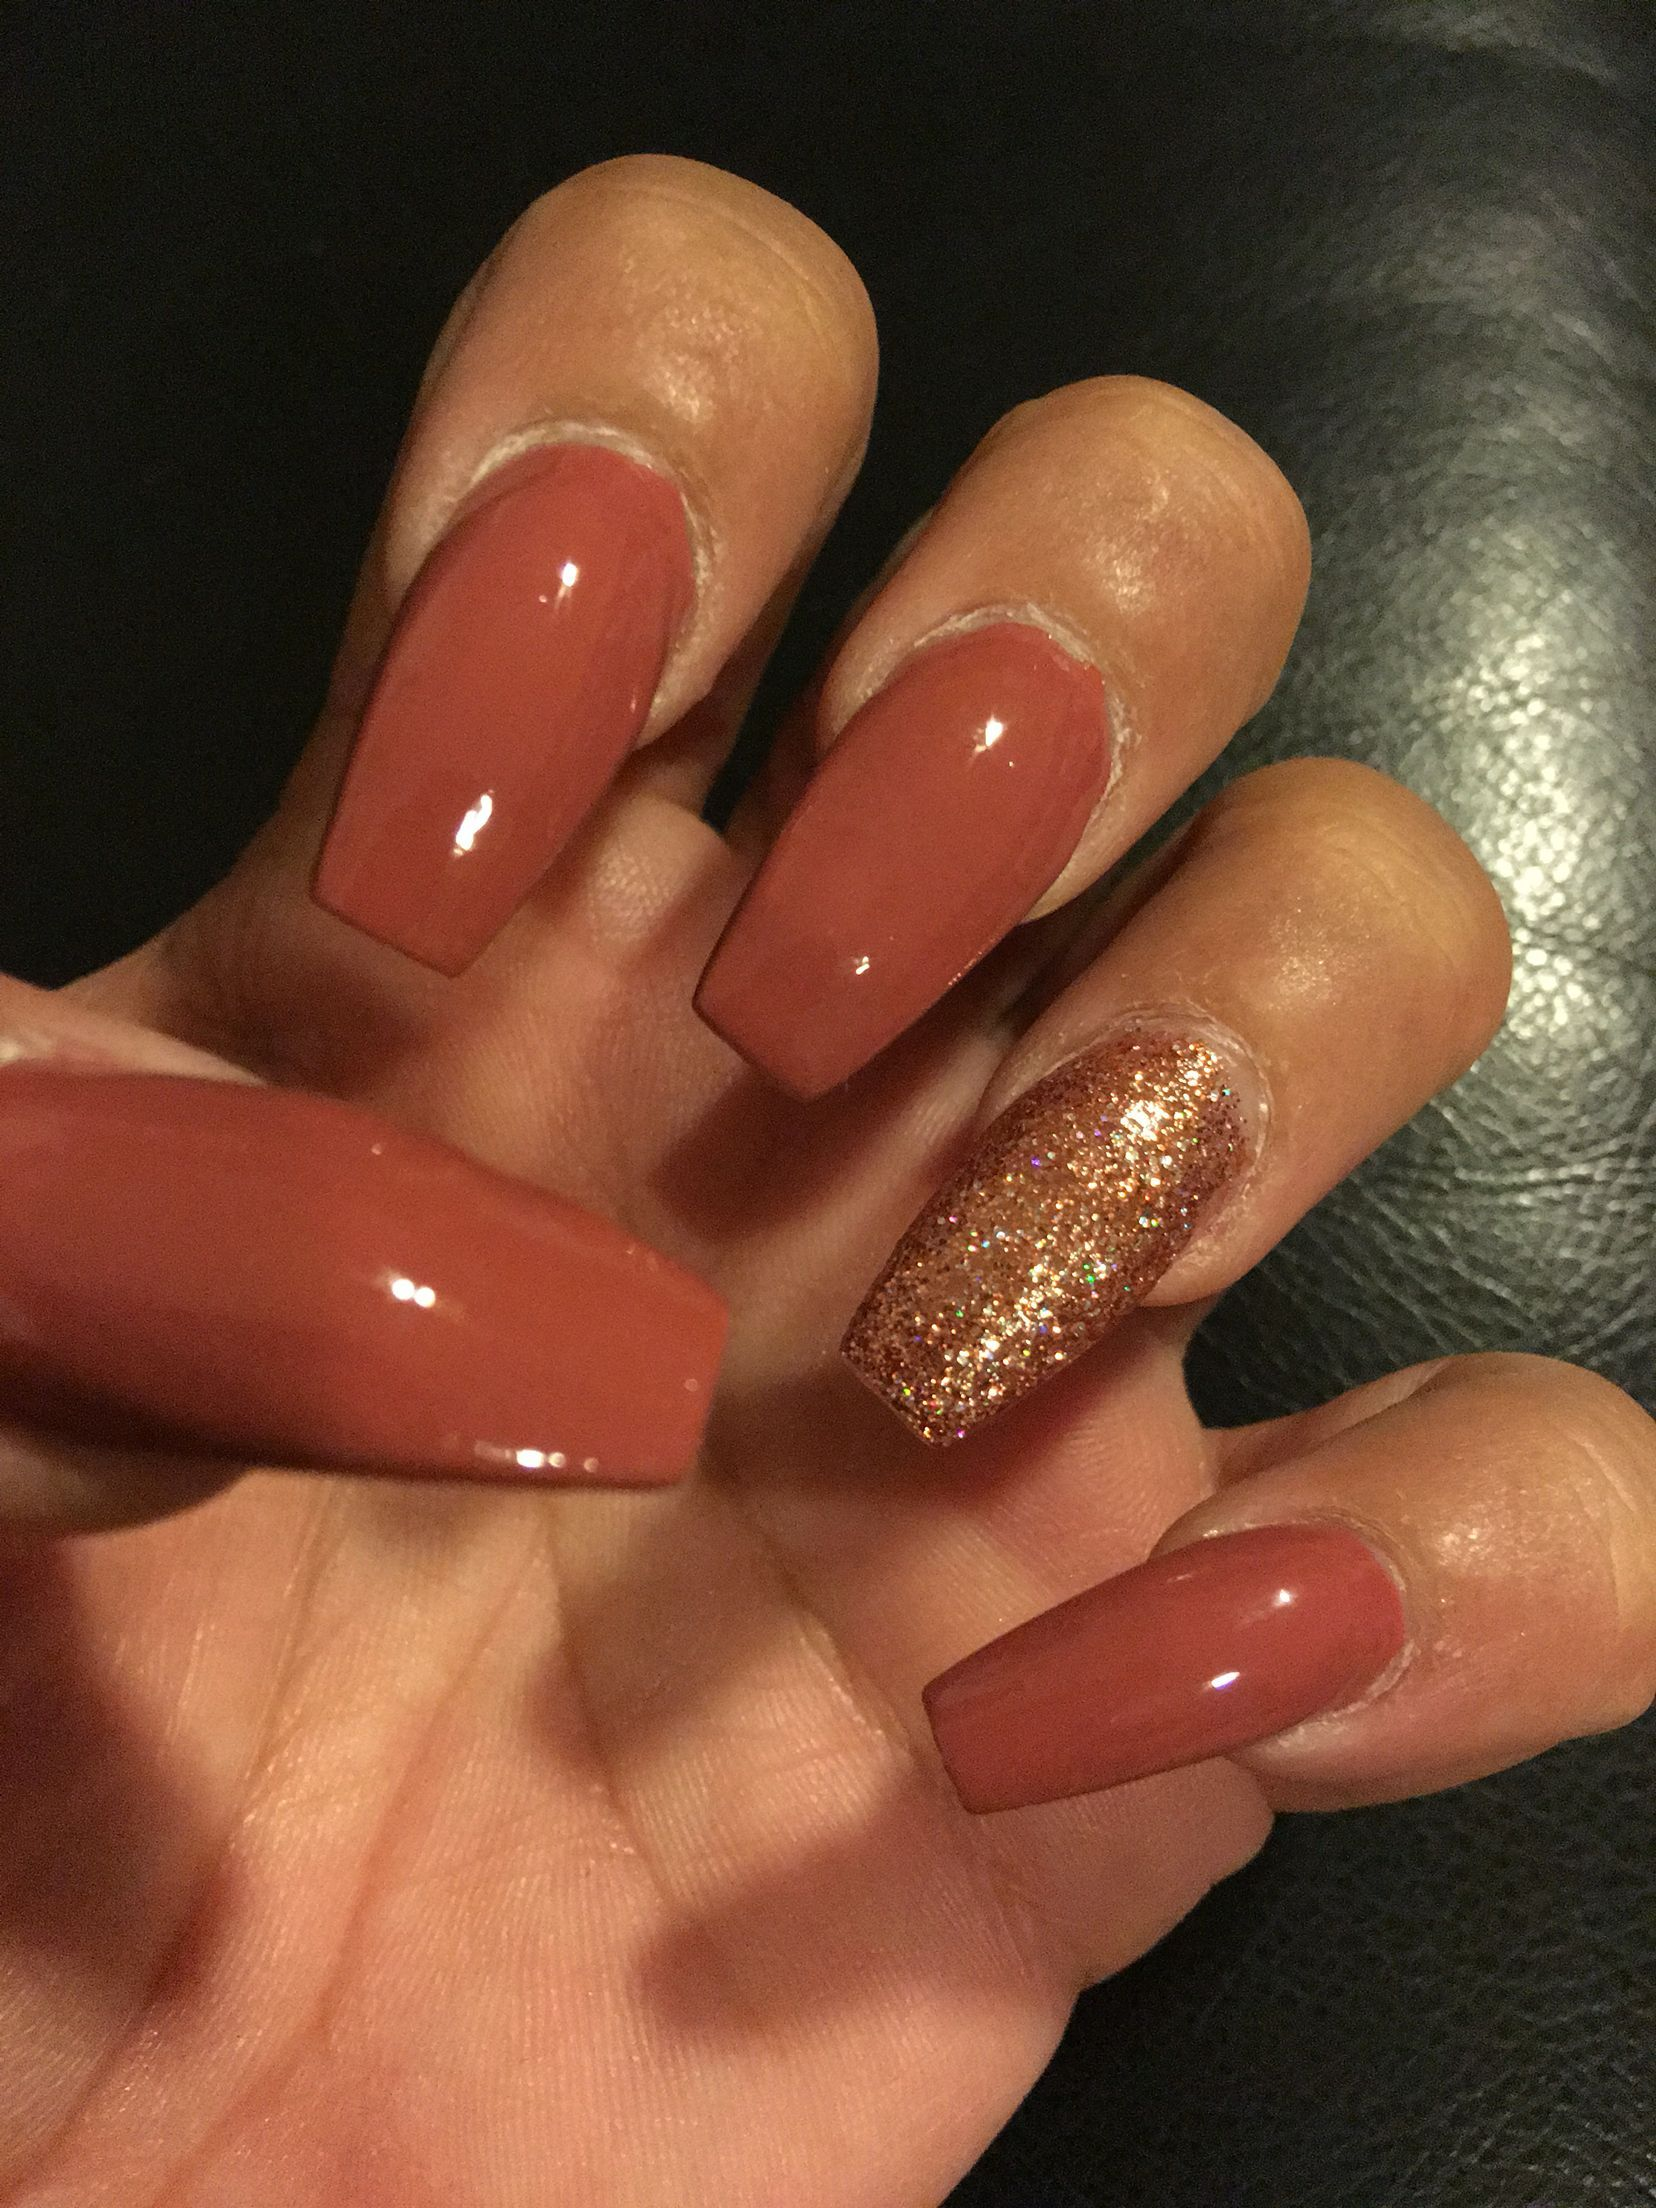 Opi Java Mauve Fall Acrylic Nails Mauve Nails Pretty Acrylic Nails